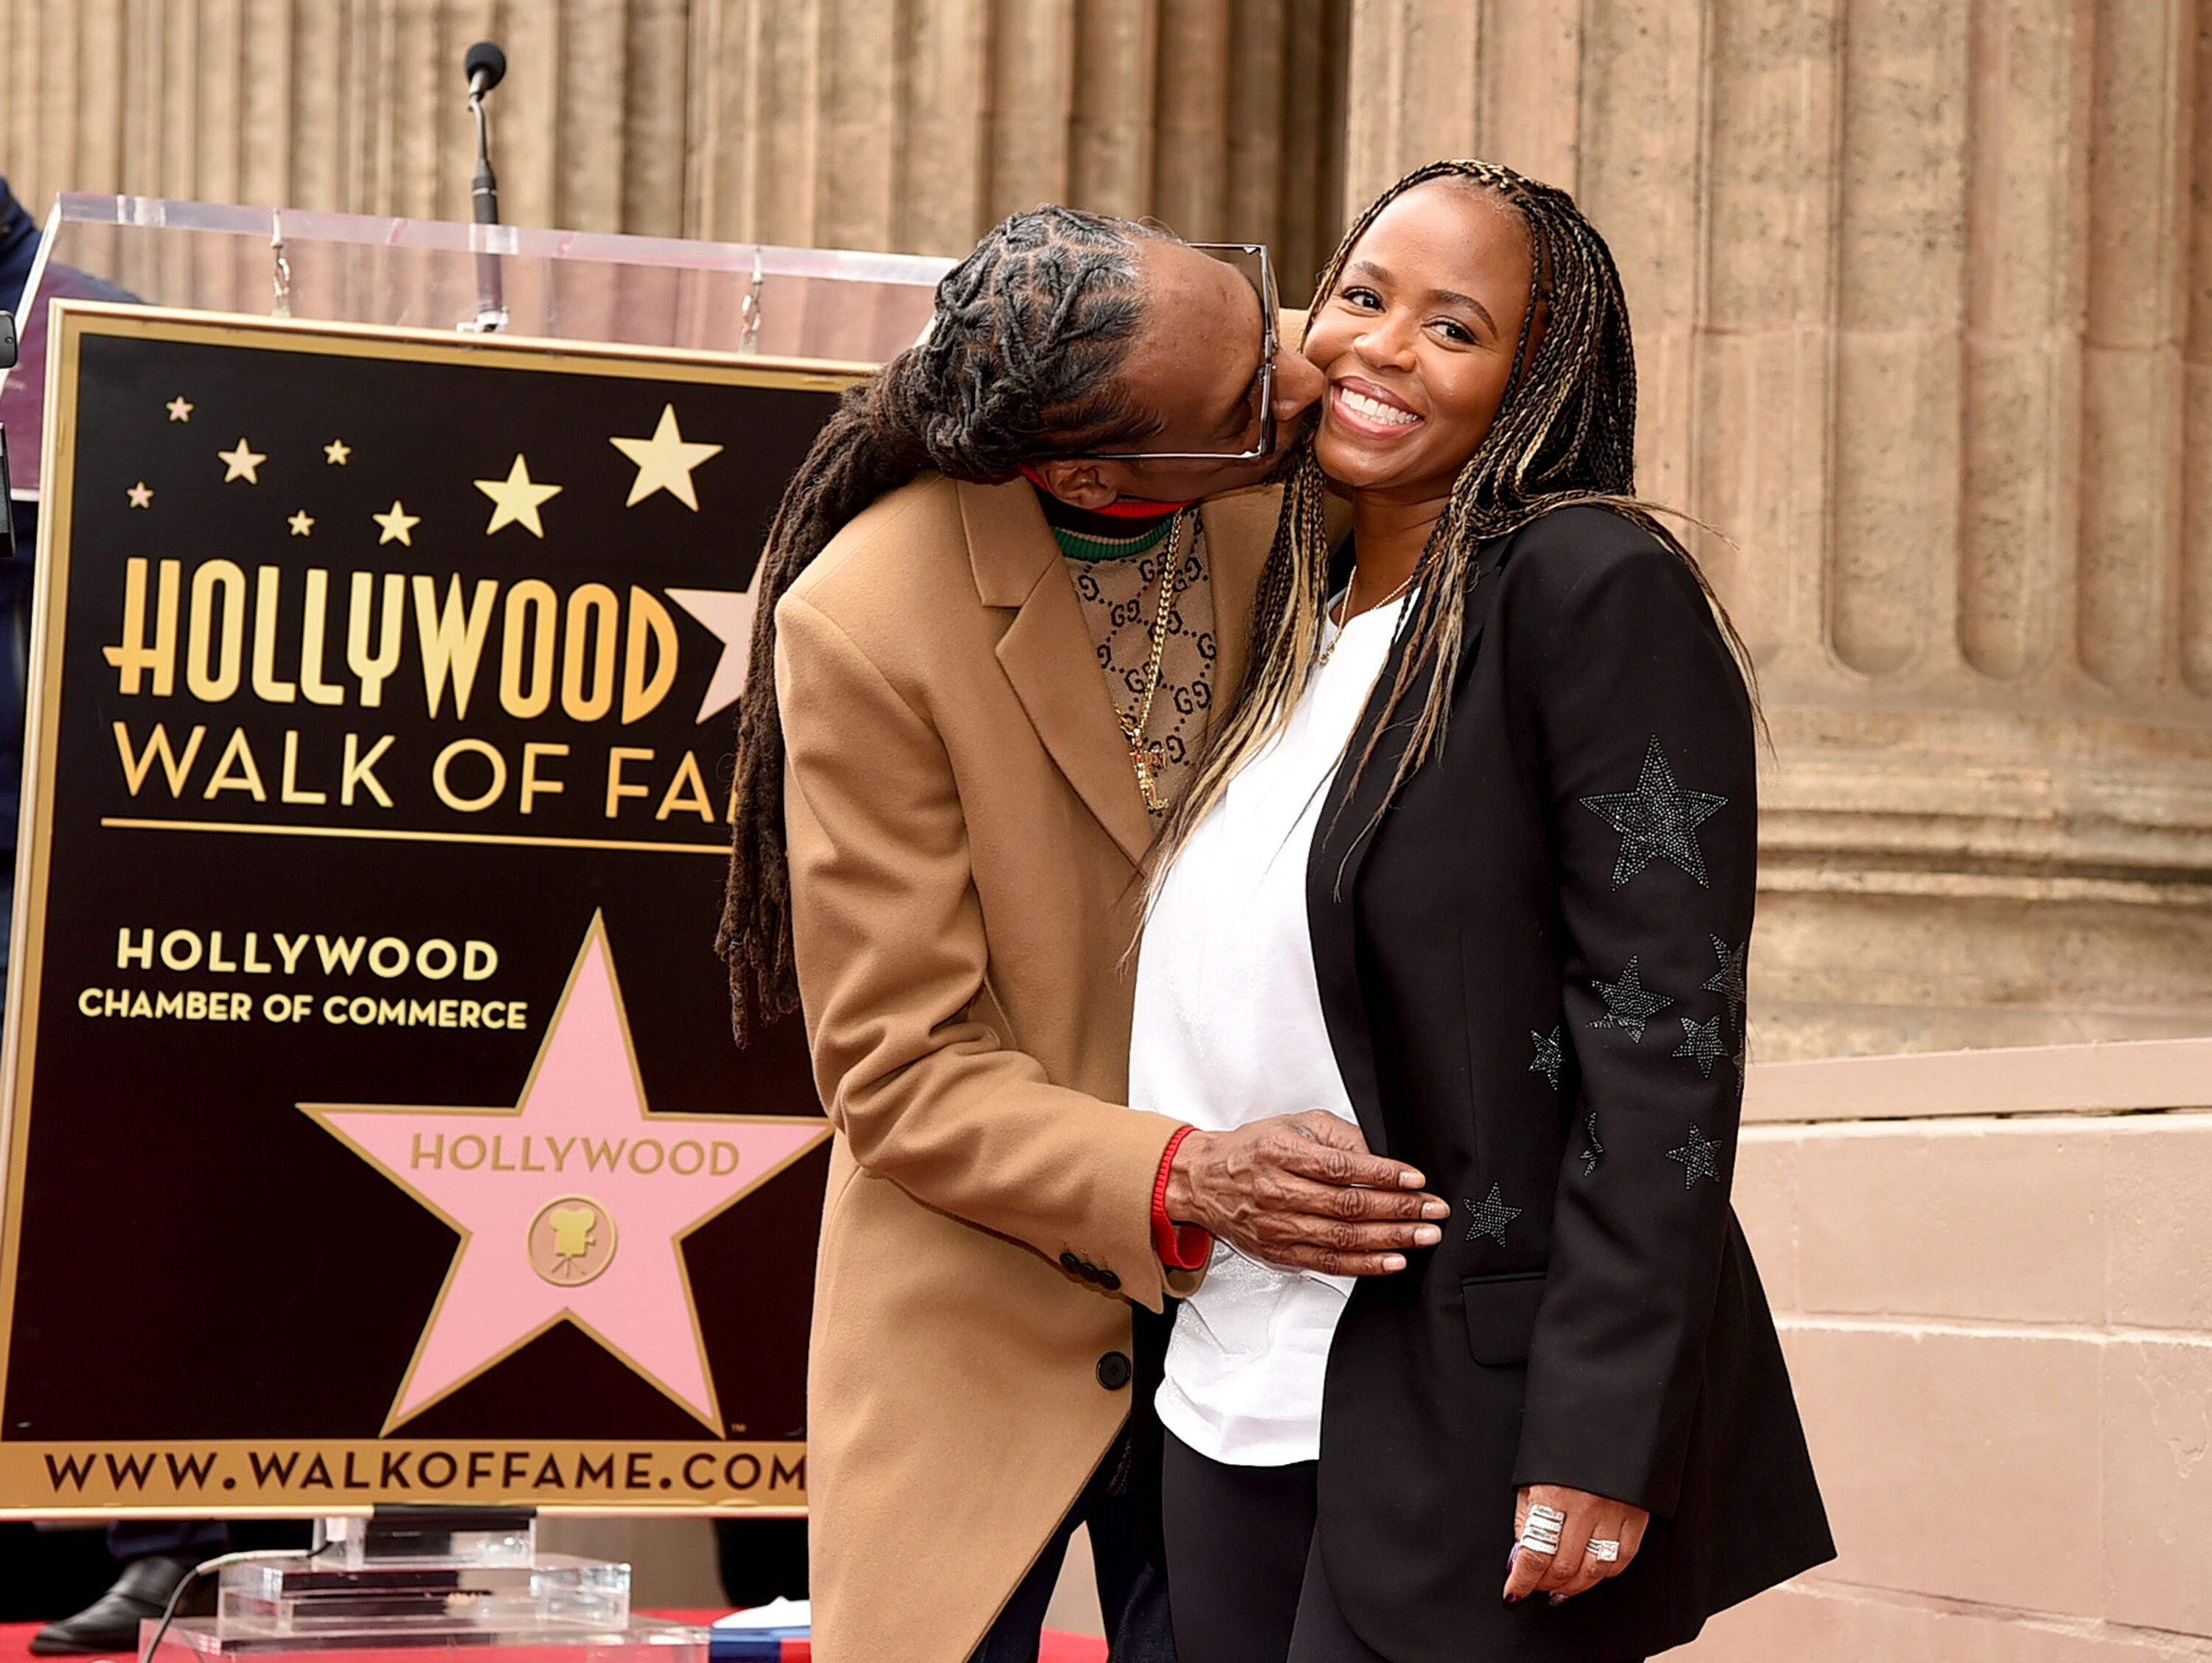 Snoop and his wife Shante at his Hollywood Walk of Fame ceremony | Source: Getty Images/GlobalImagesUkraine